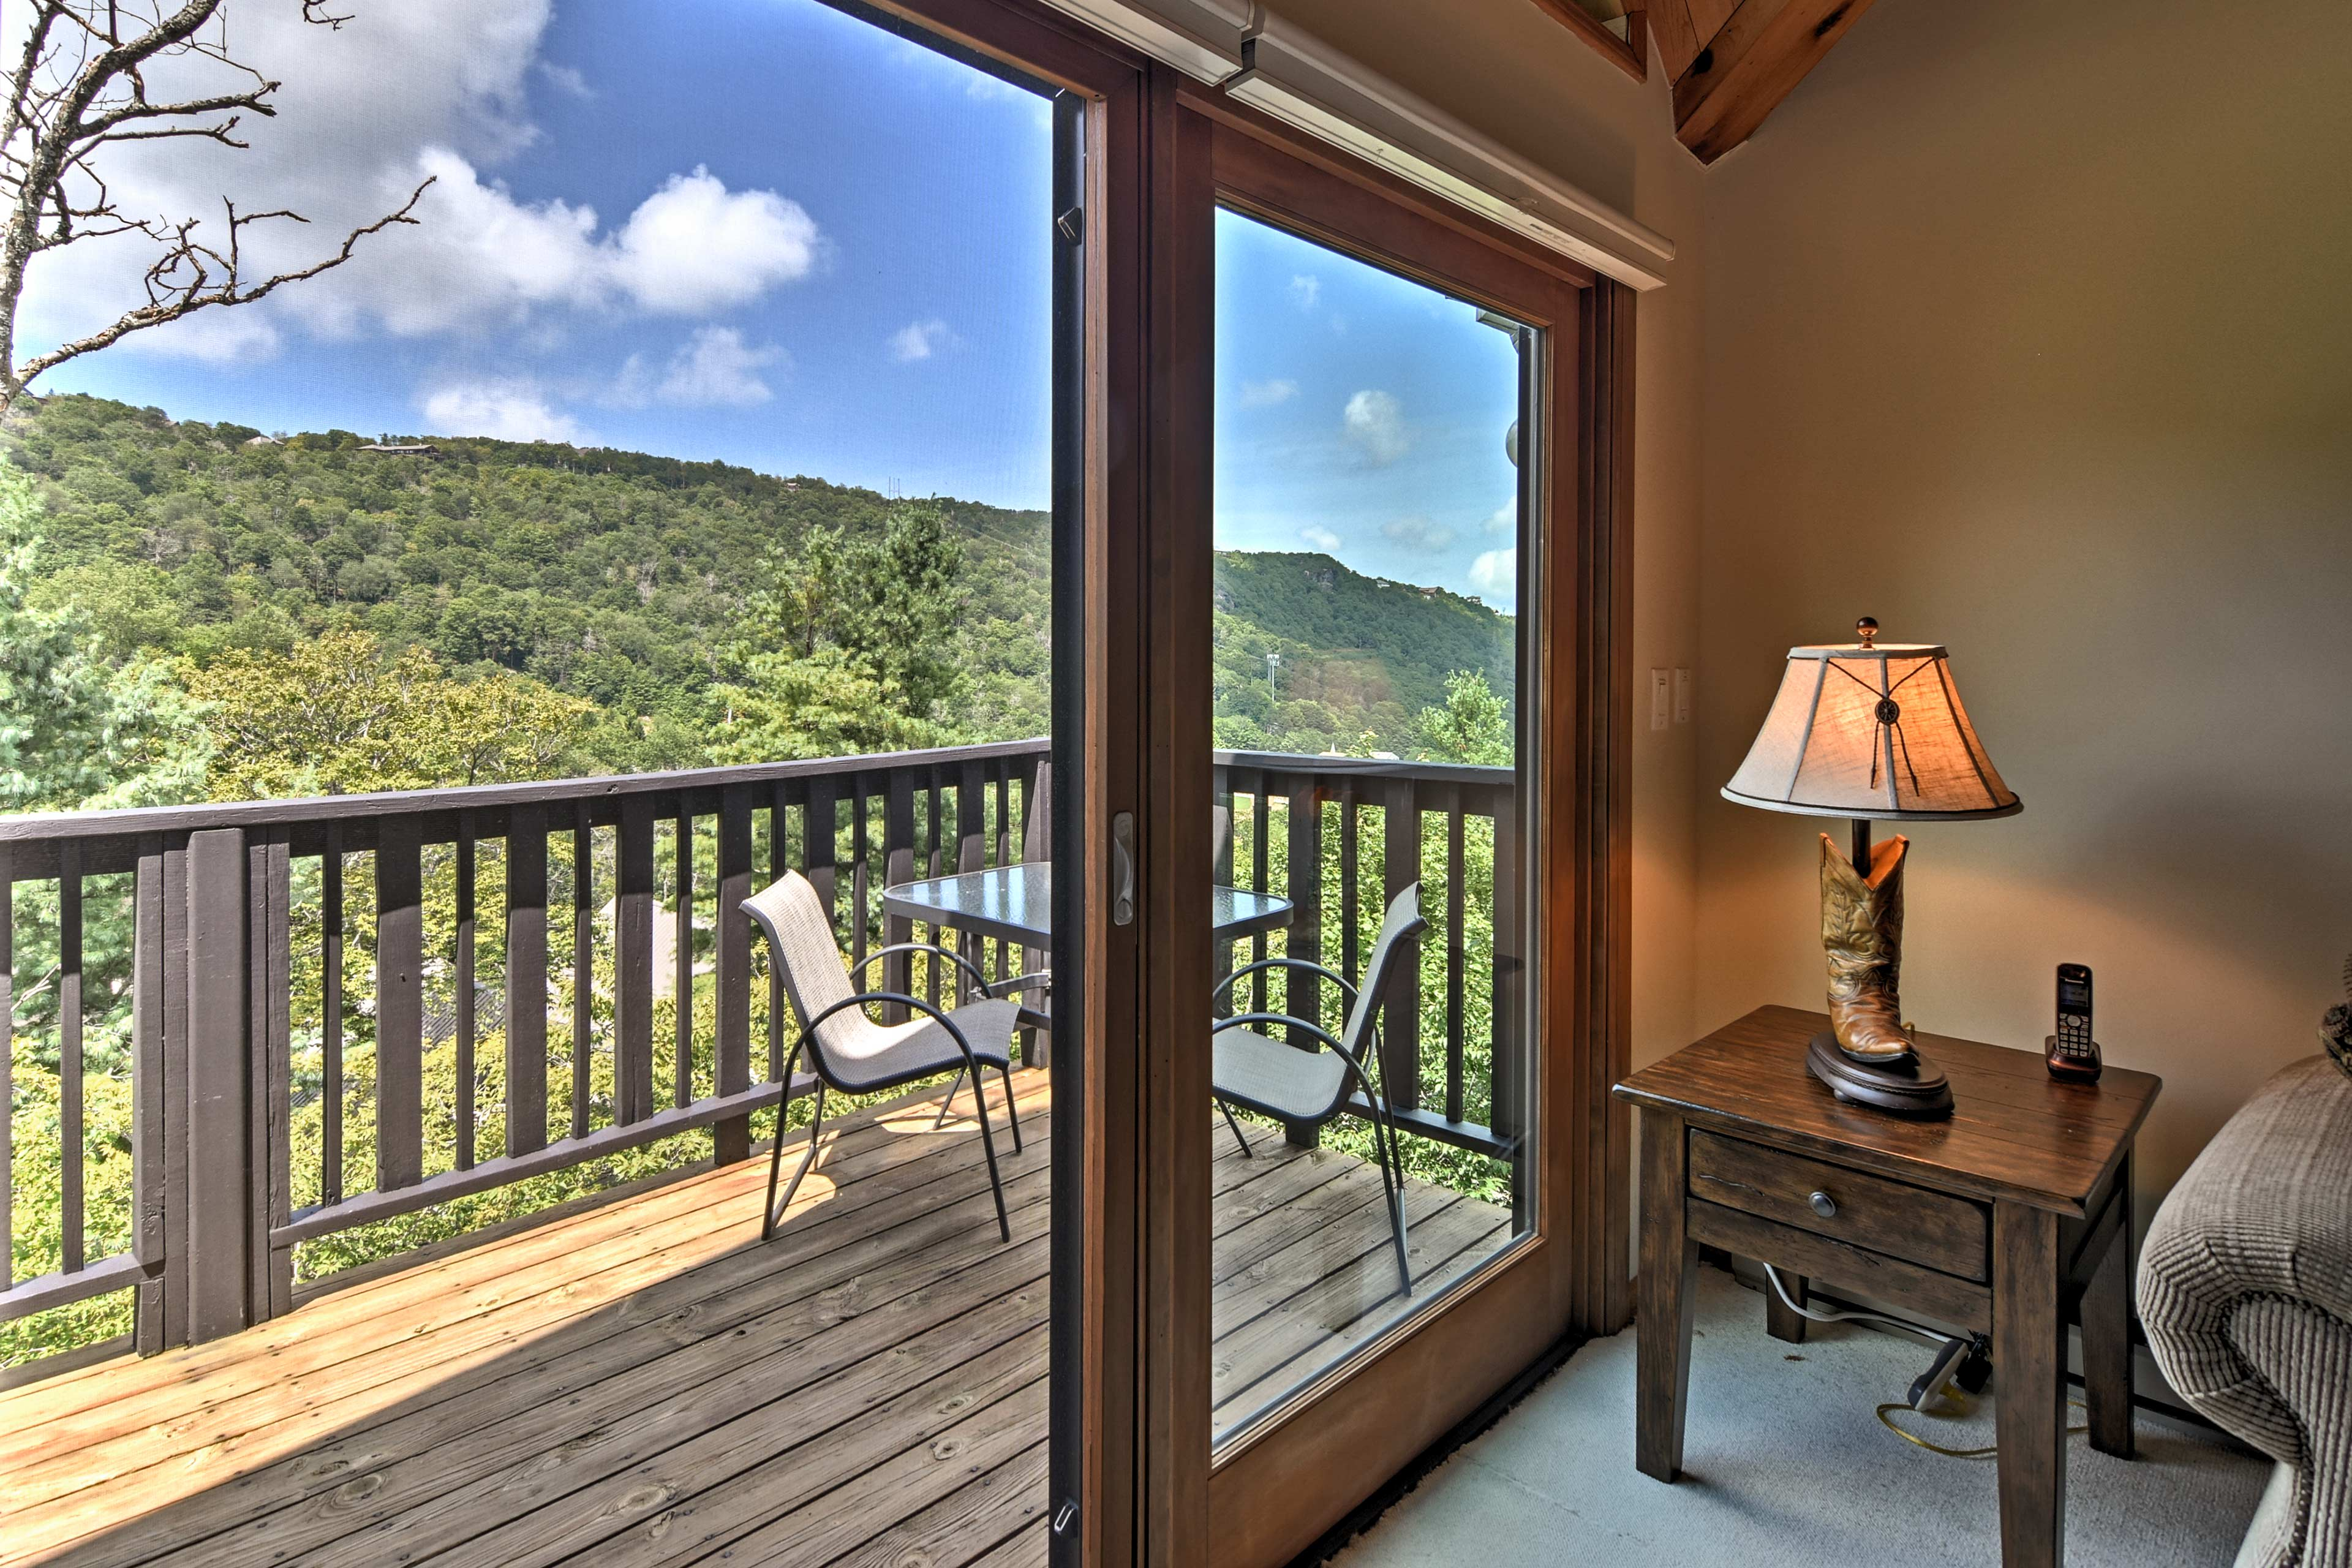 Open the sliding glass door and let the fresh mountain air flow inside.